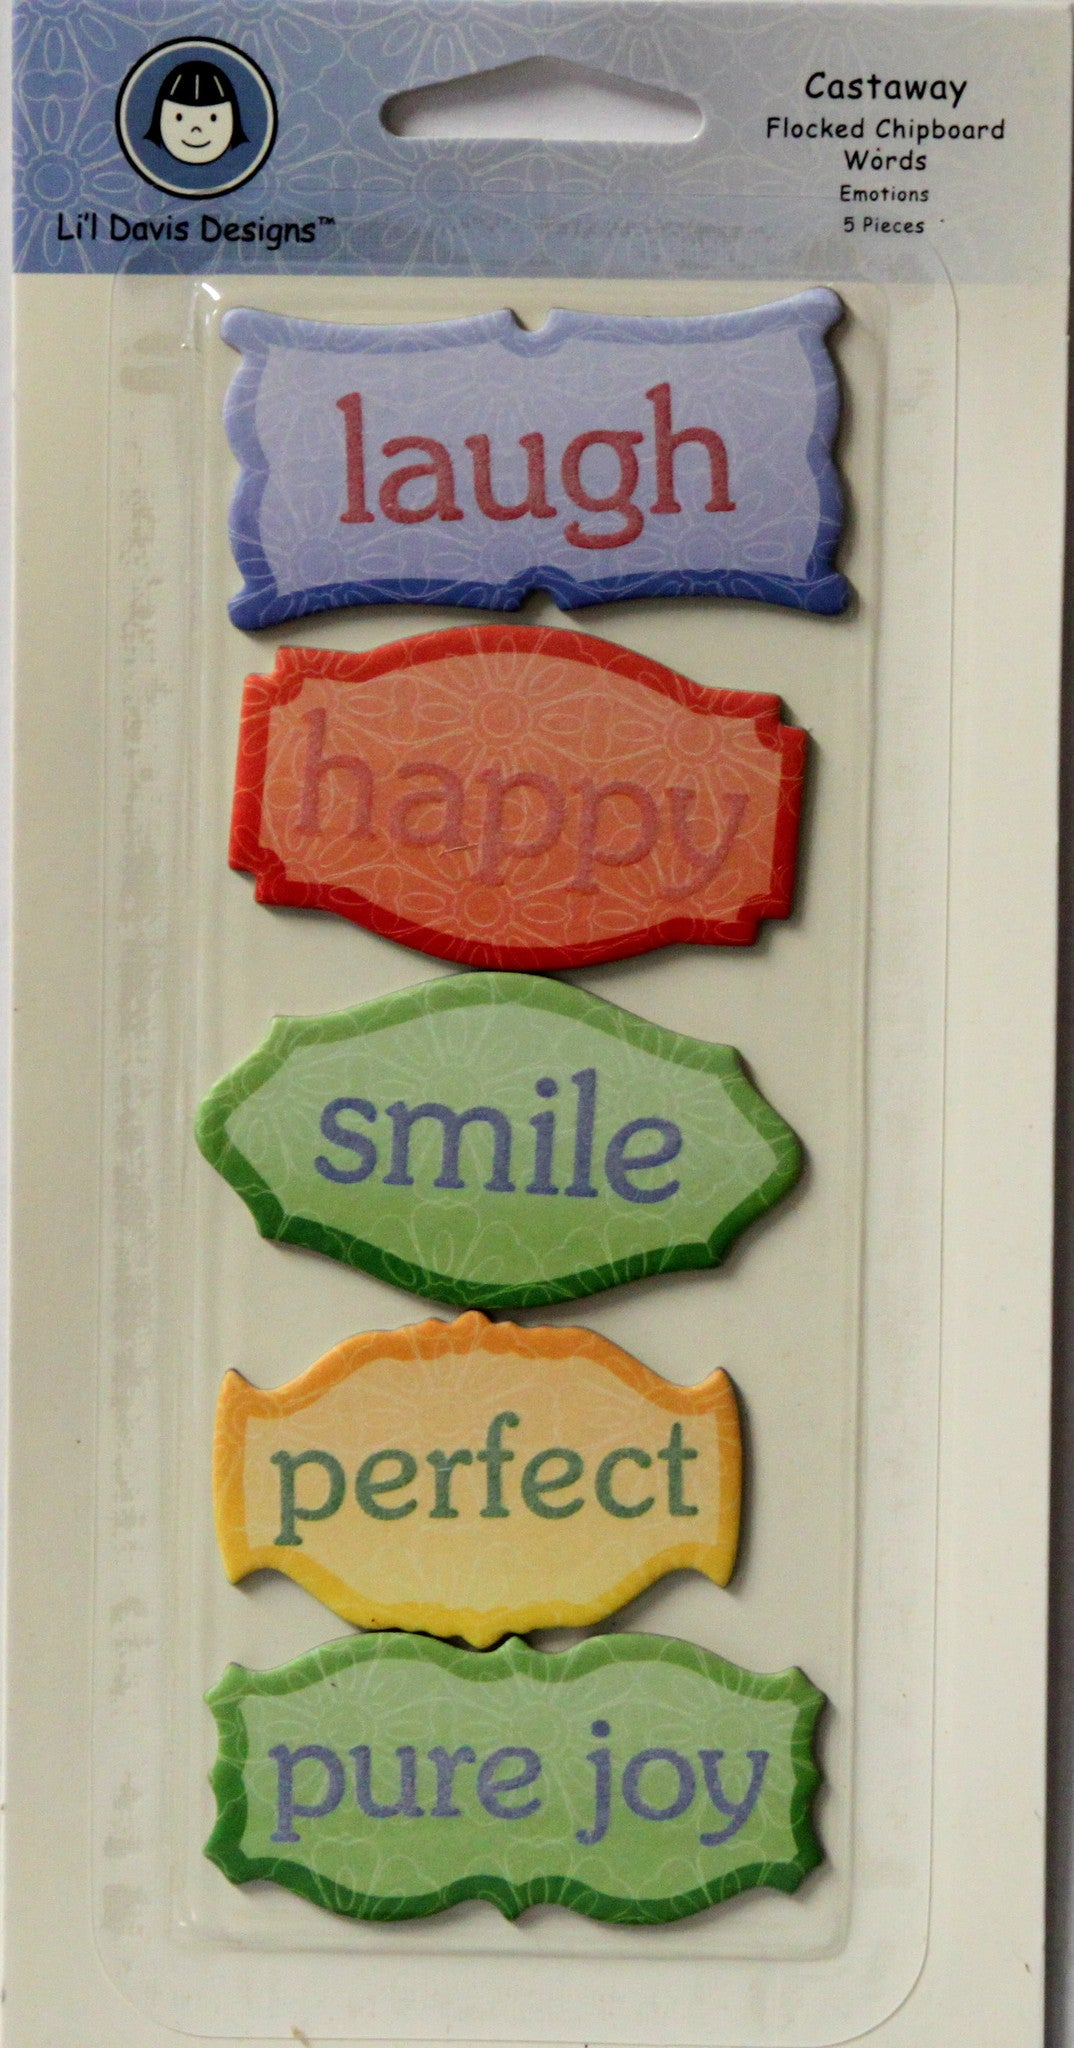 Li'l Davis Designs Castaway Flocked Chipboard Words Embellishments - SCRAPBOOKFARE